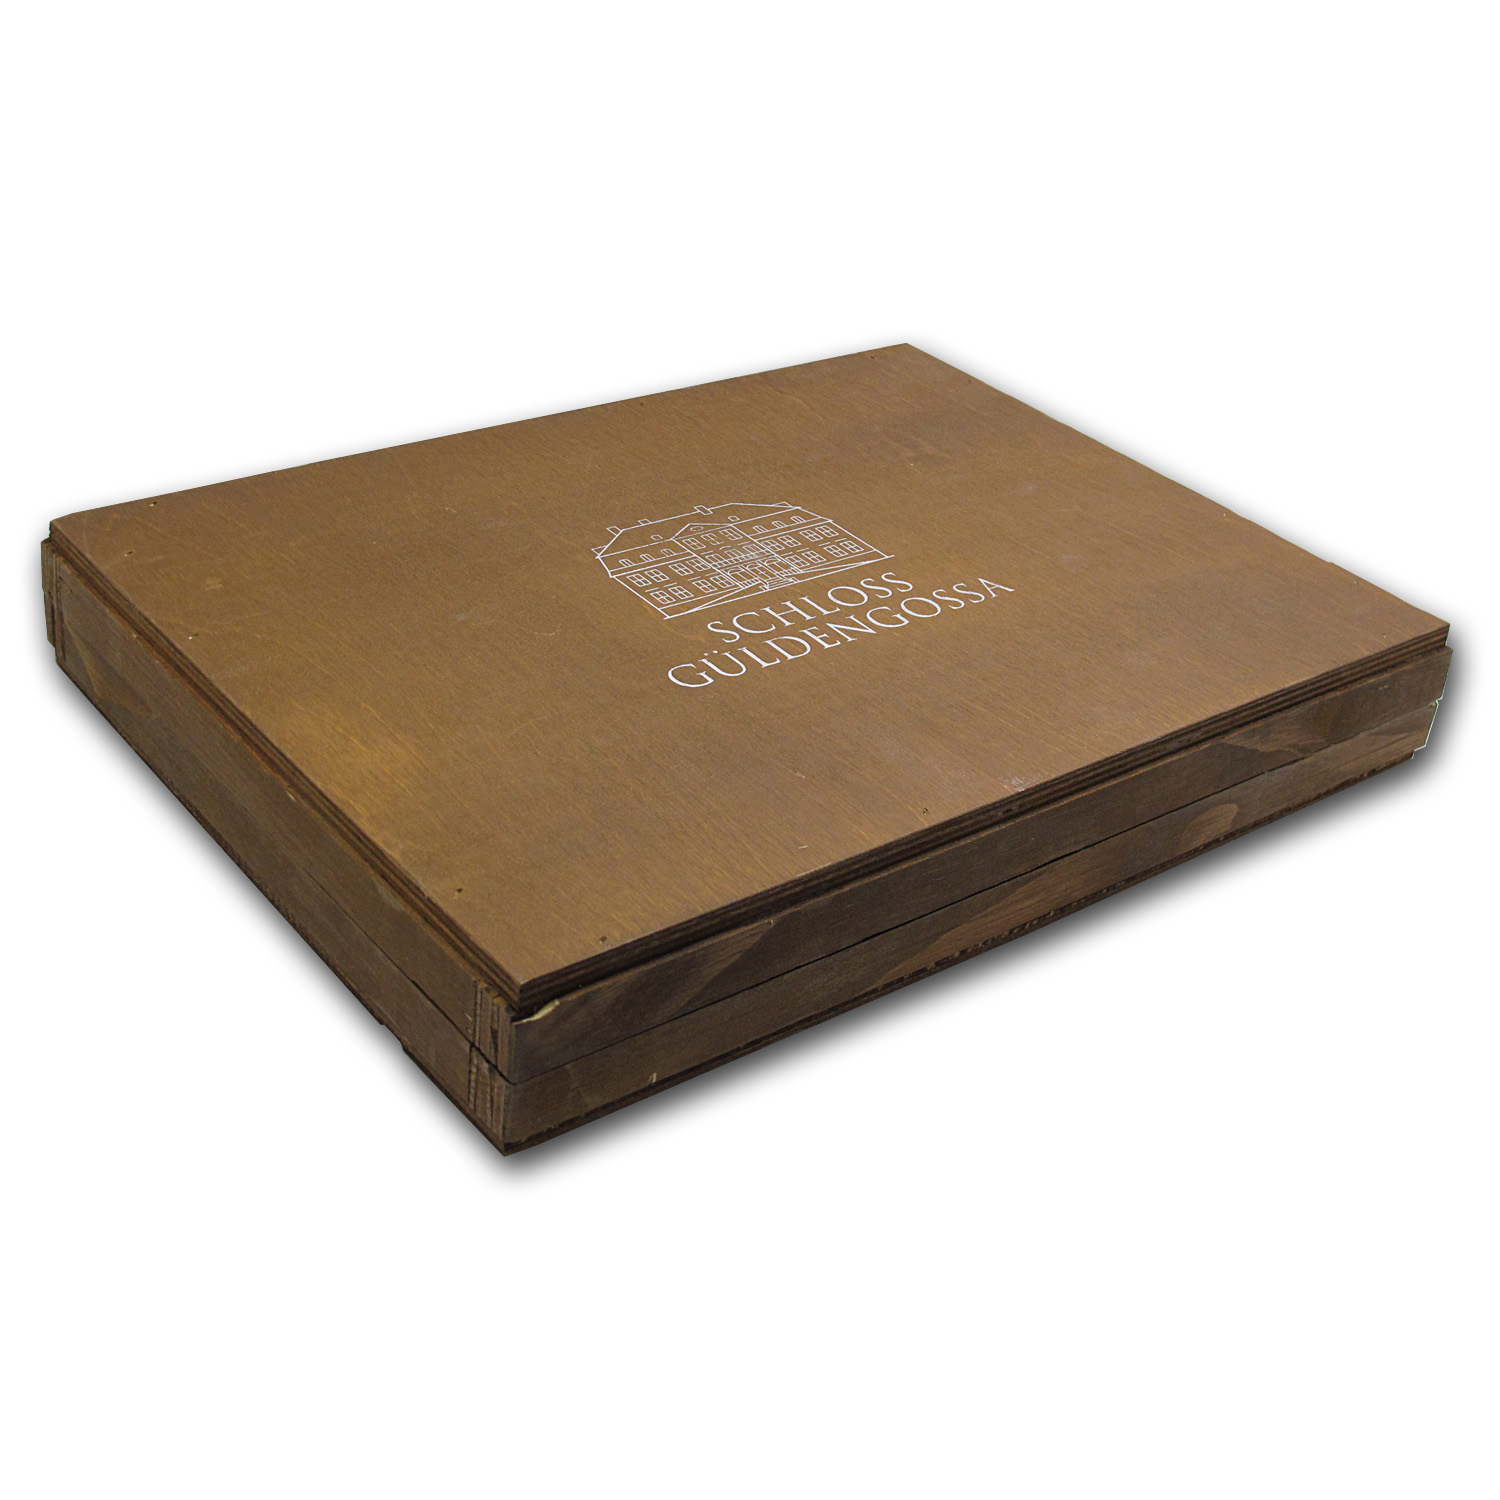 Geiger Edelmetalle Wood Storage Box for 250 gram Silver Bars